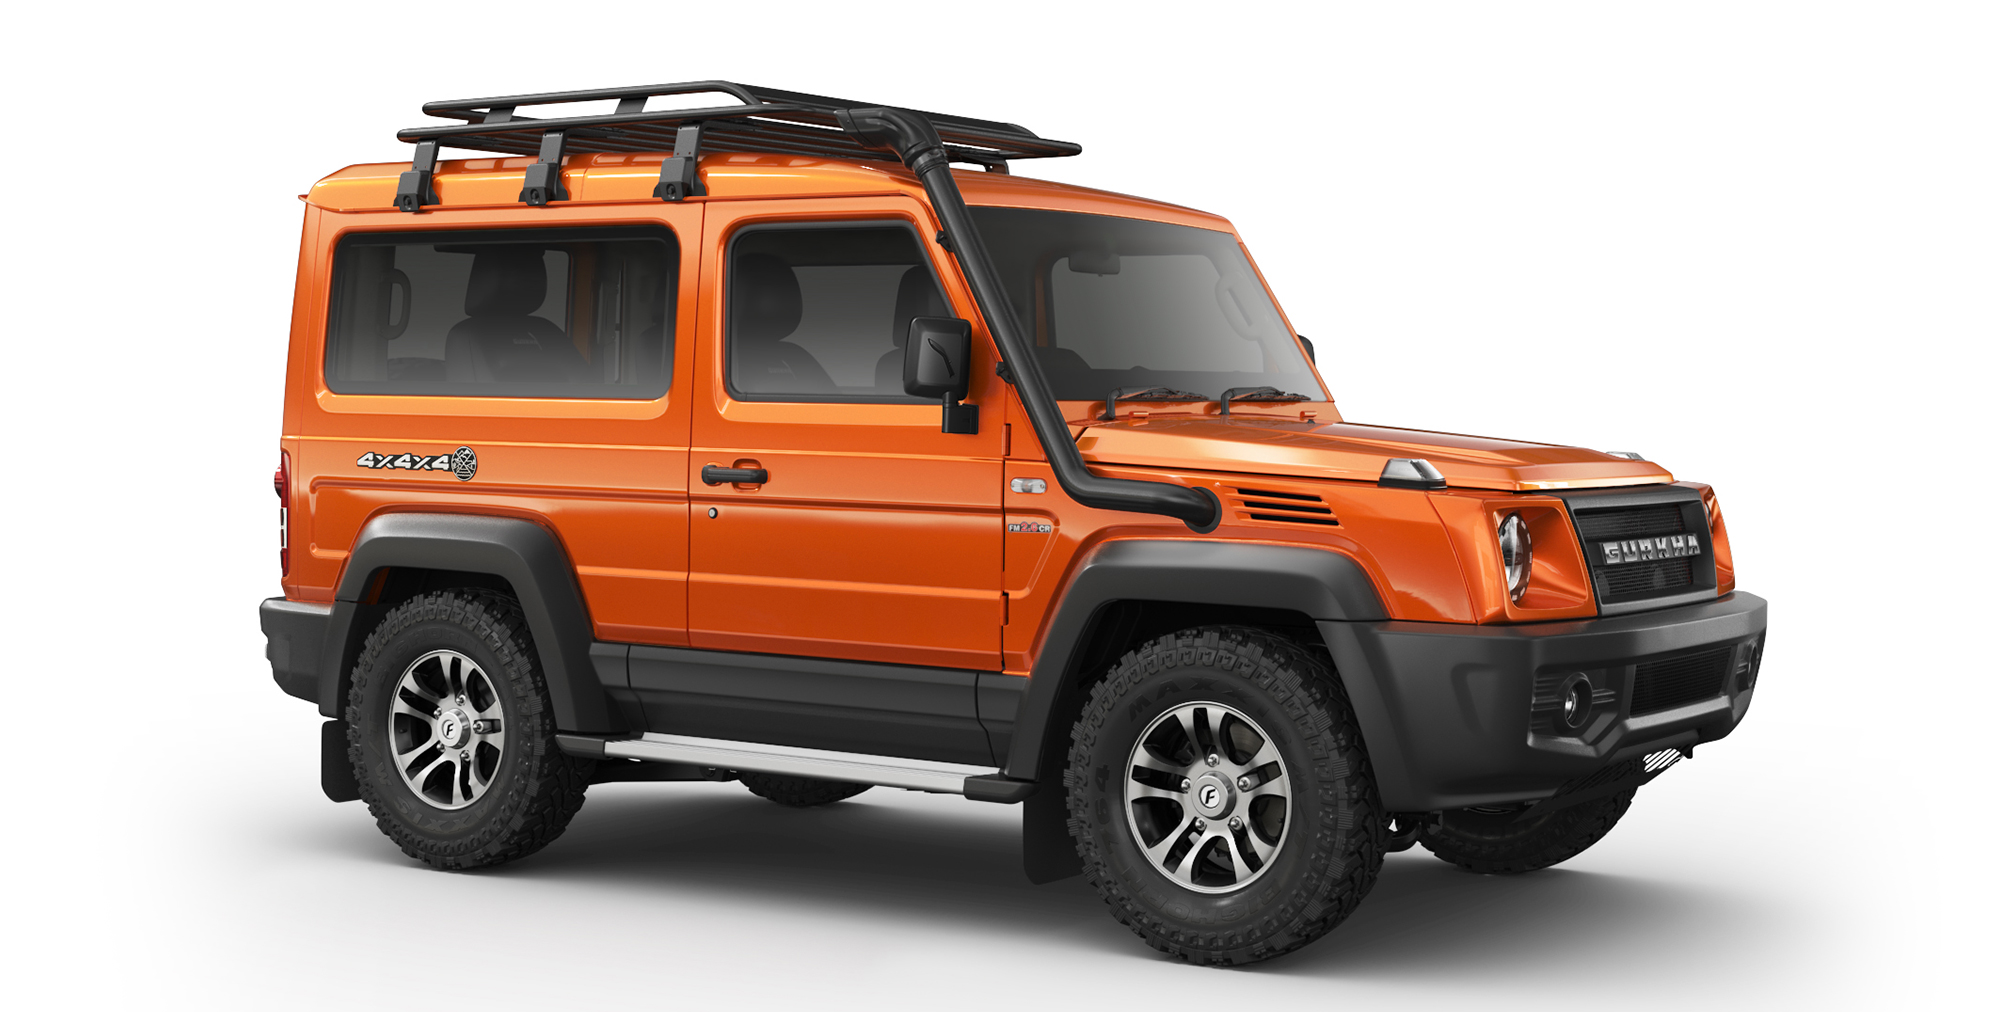 Orange Gurkha 4x4x4 with Alloy Wheels and AT Tyres